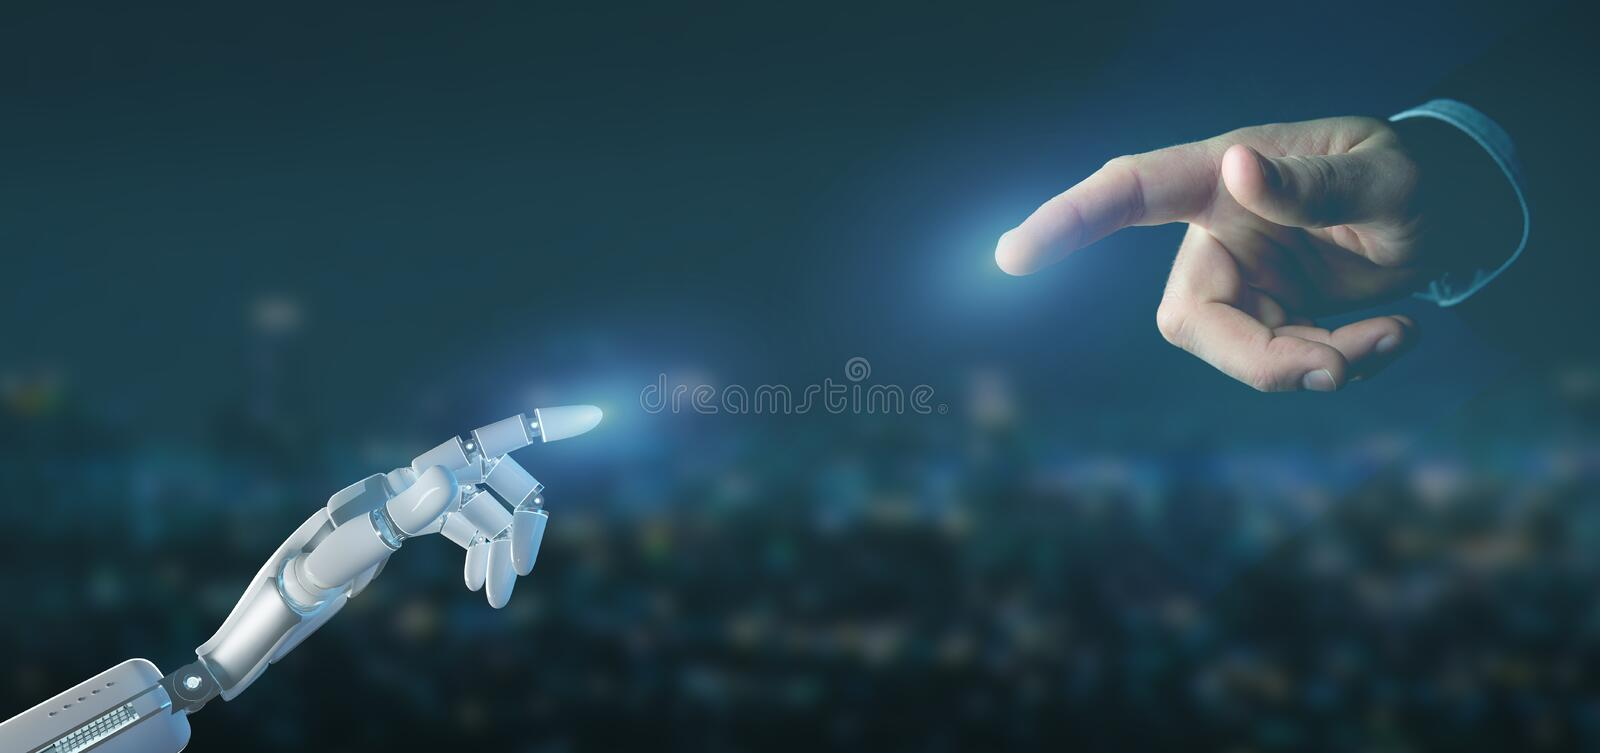 Cyborg robot hand on a city background 3d rendering. View of a Cyborg robot hand on a city background 3d rendering royalty free illustration